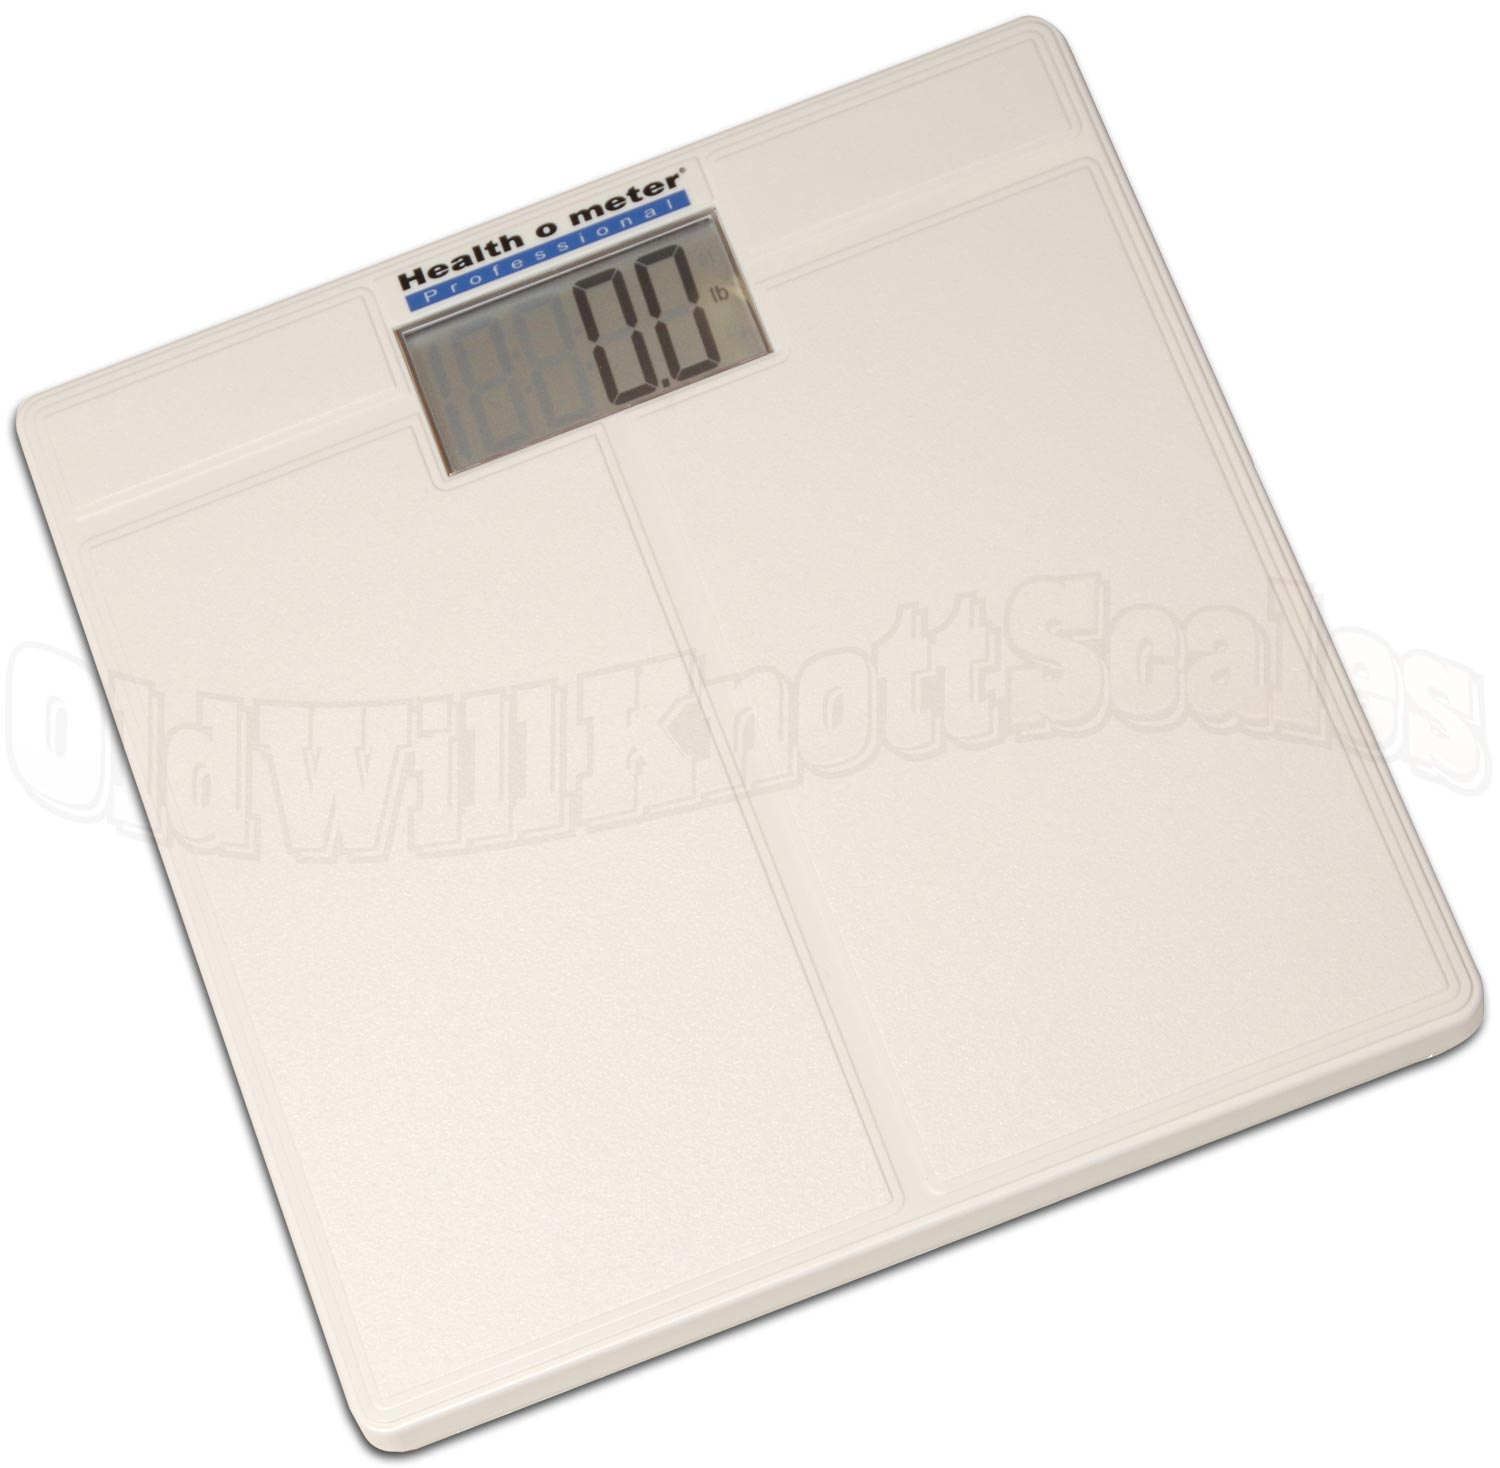 HealthOMeter Medical Scales: Authorized Dealer: Since , Health o meter Professional has been the leading professional scale brand. Originally formed in as the Continental Scale Works, its heritage is as the inventor of the